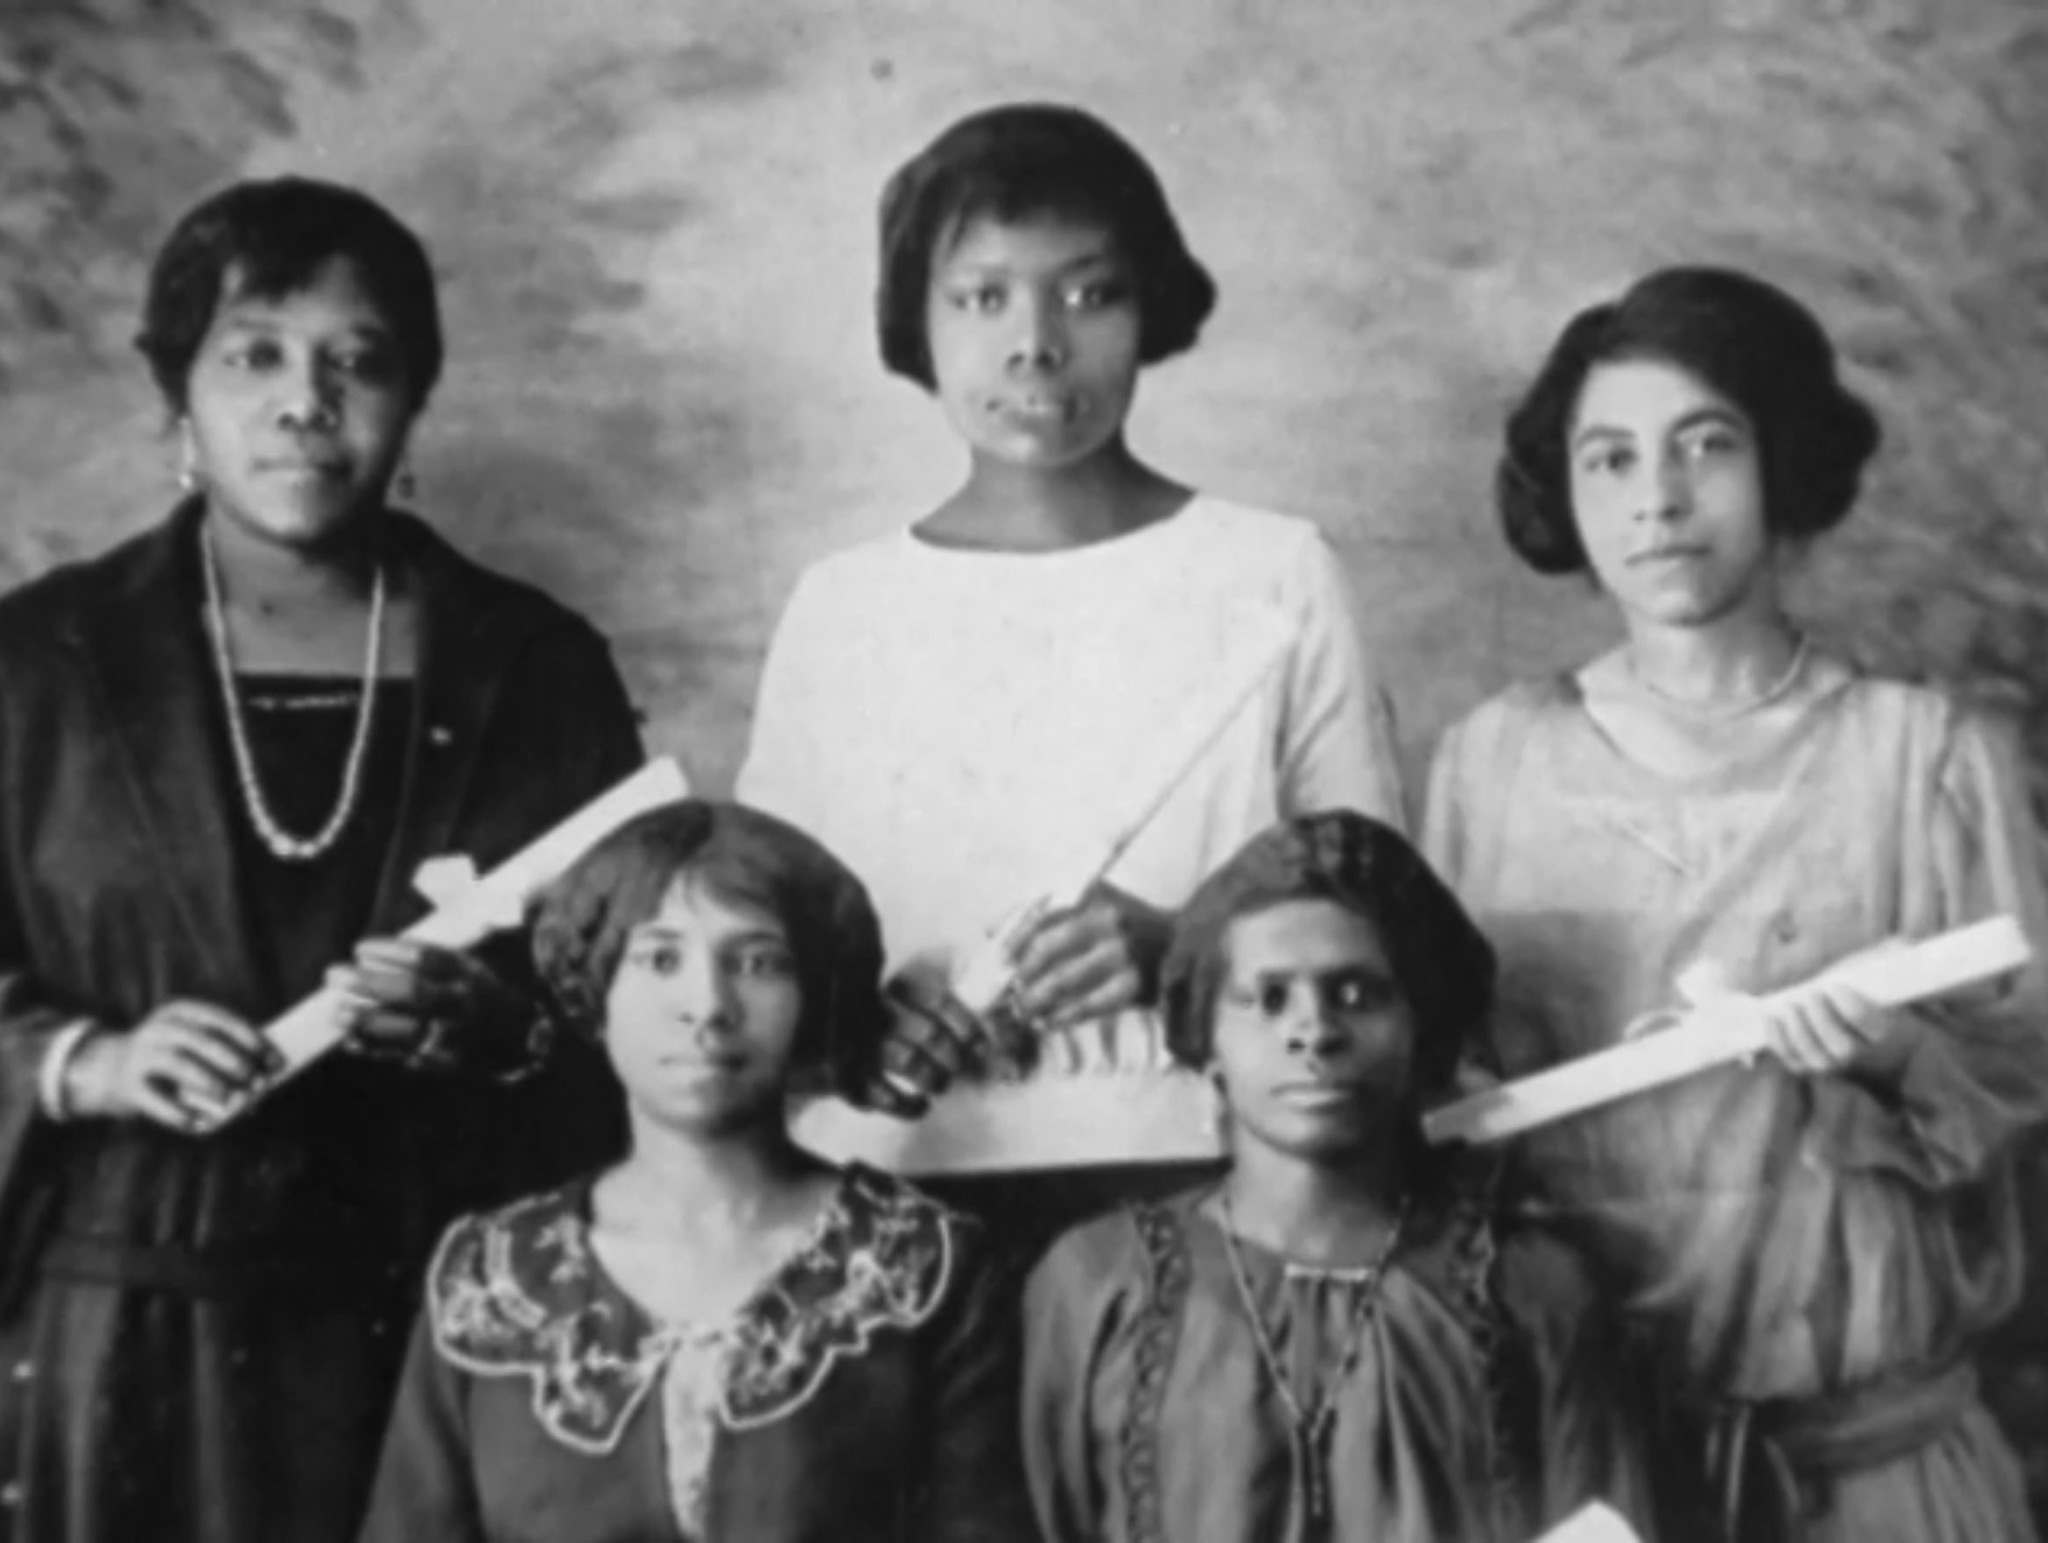 NFB</p></p><p>Sylvia Hamilton & Claire Prieto's 1989 National Film Board of Canada documentary, Black Mother Black Daughter</p>